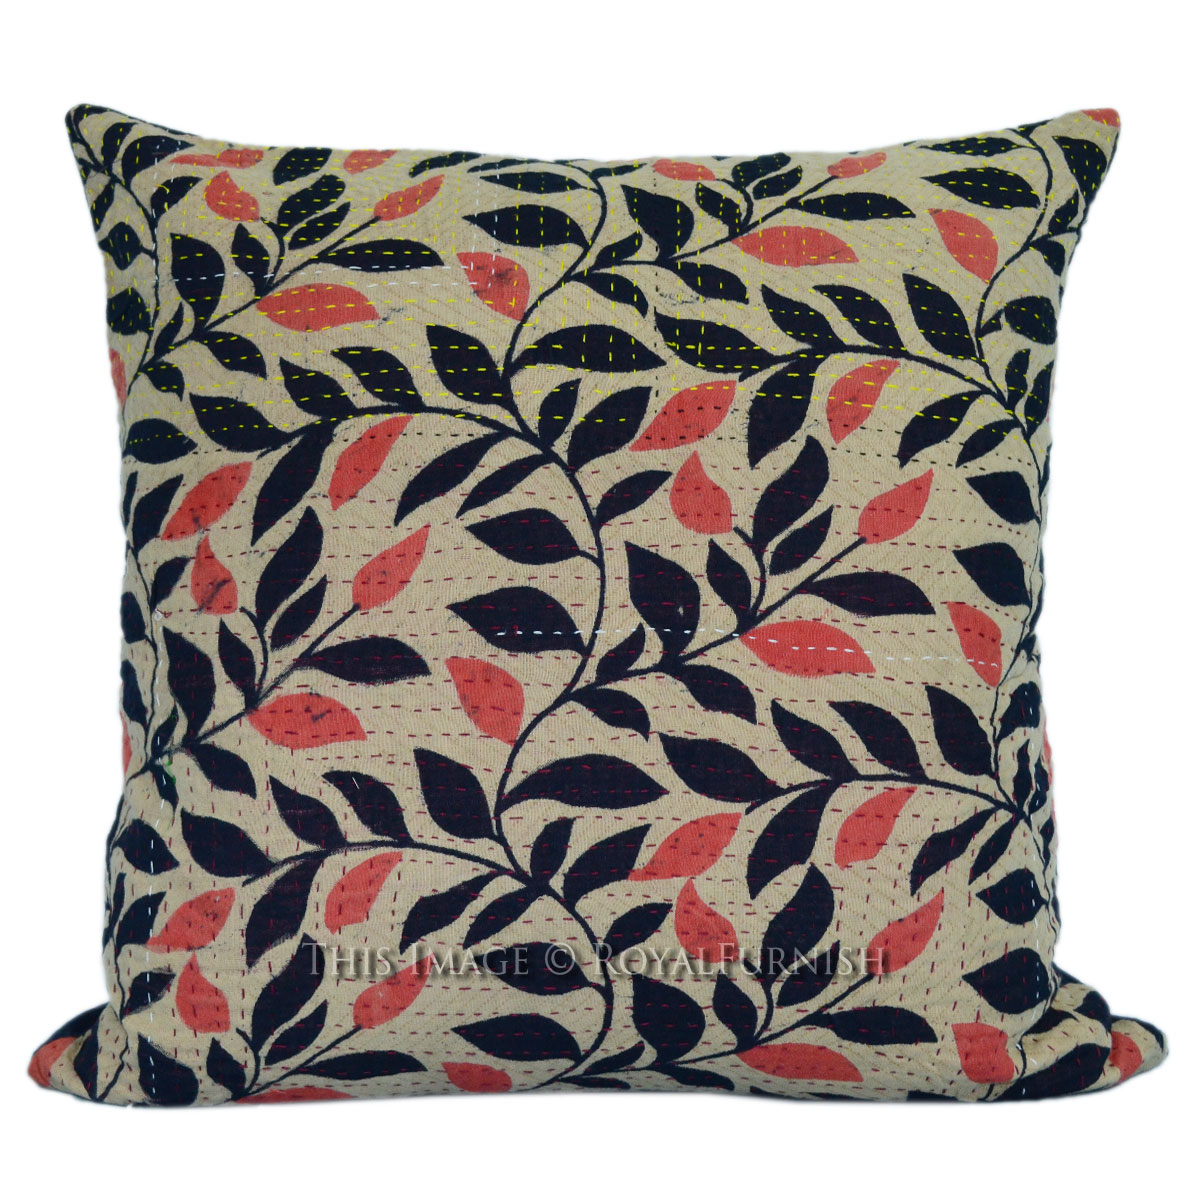 16x16 vintage old fabric kantha square throw pillow case - Fabric for throw pillows ...